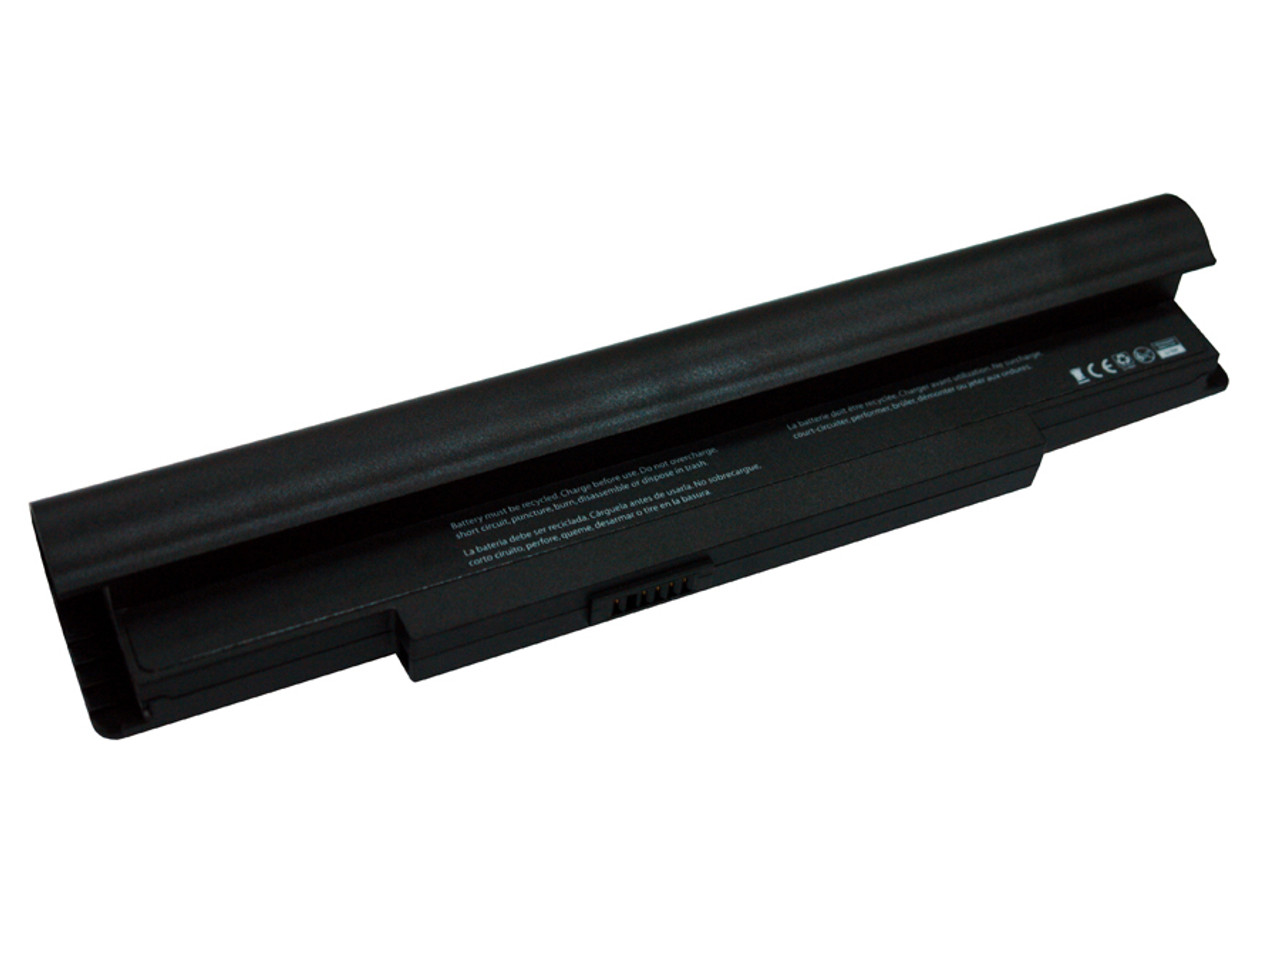 Samsung NC10 NC20 N110 N120 (BLACK) battery